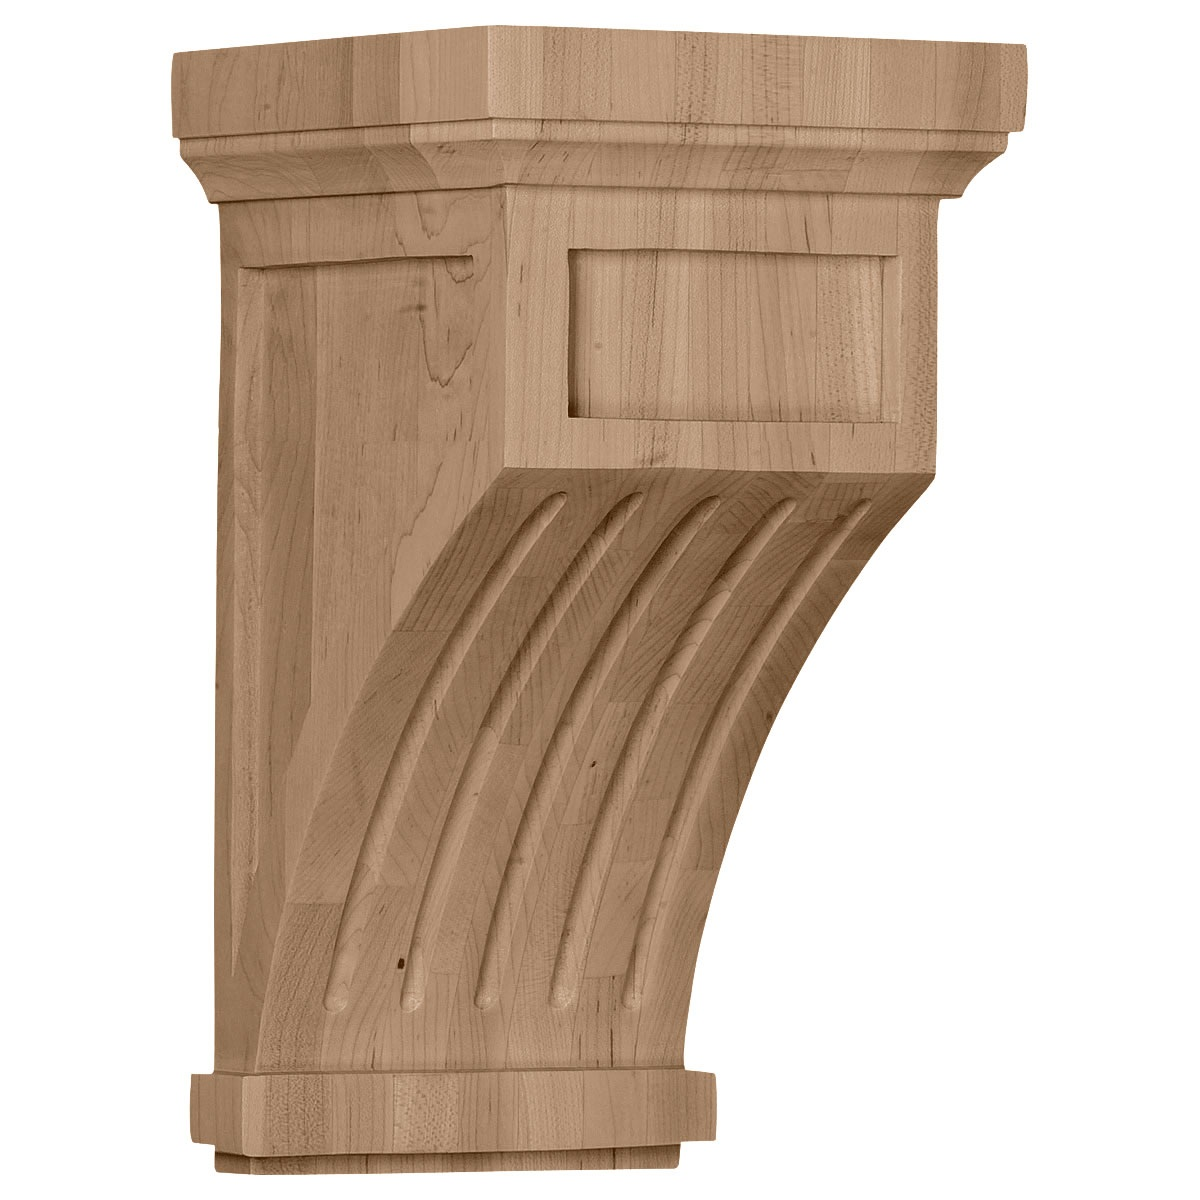 COR07X07X13FL Large Fluted Corbel